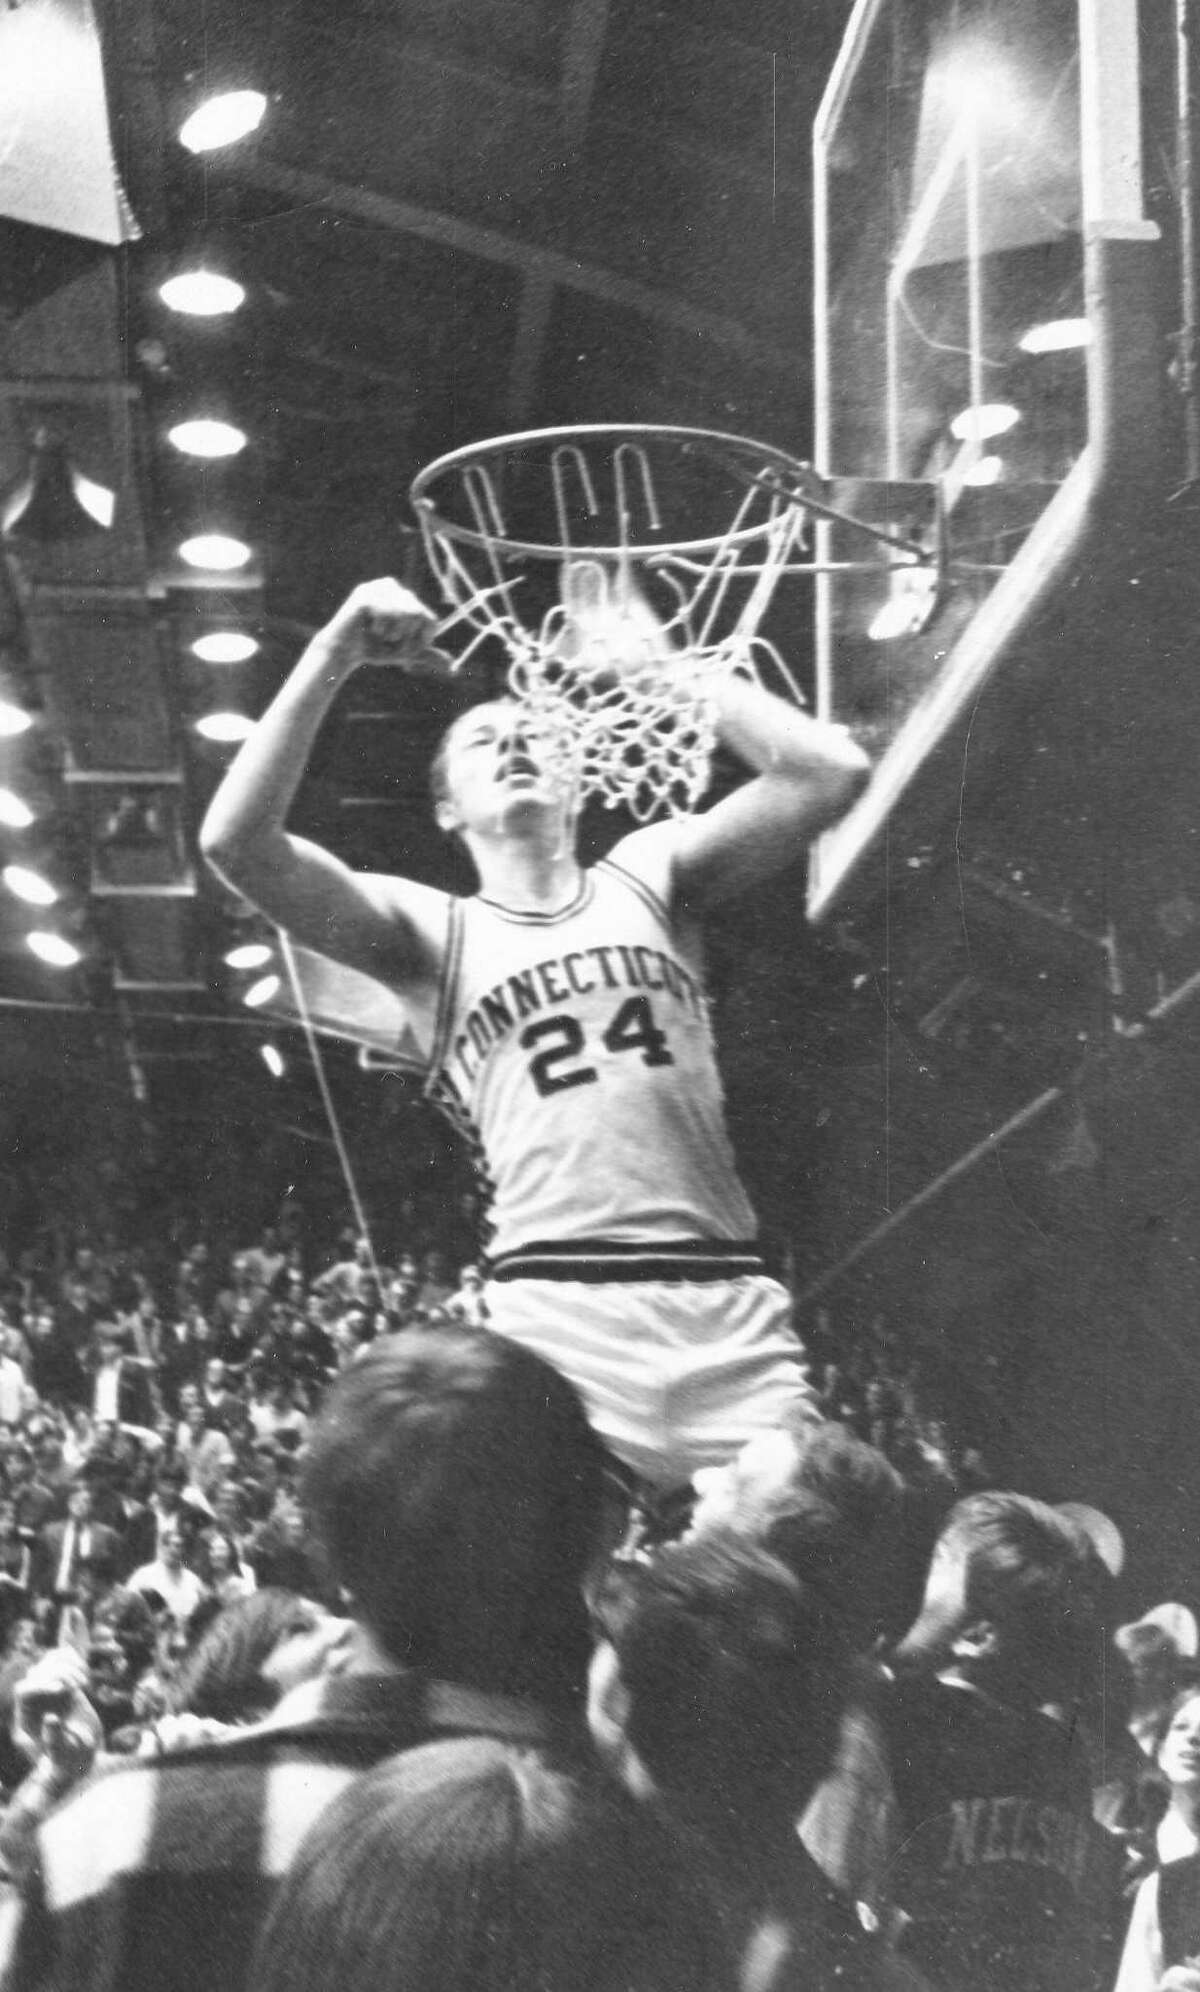 Connecticut's Bob Staak cuts down the nets after the Huskies beat Rhode Island 35-32 to win the 1969-70 Yankee Conference title. Staak averaged 18.1 points over three seasons fro the Huskies.